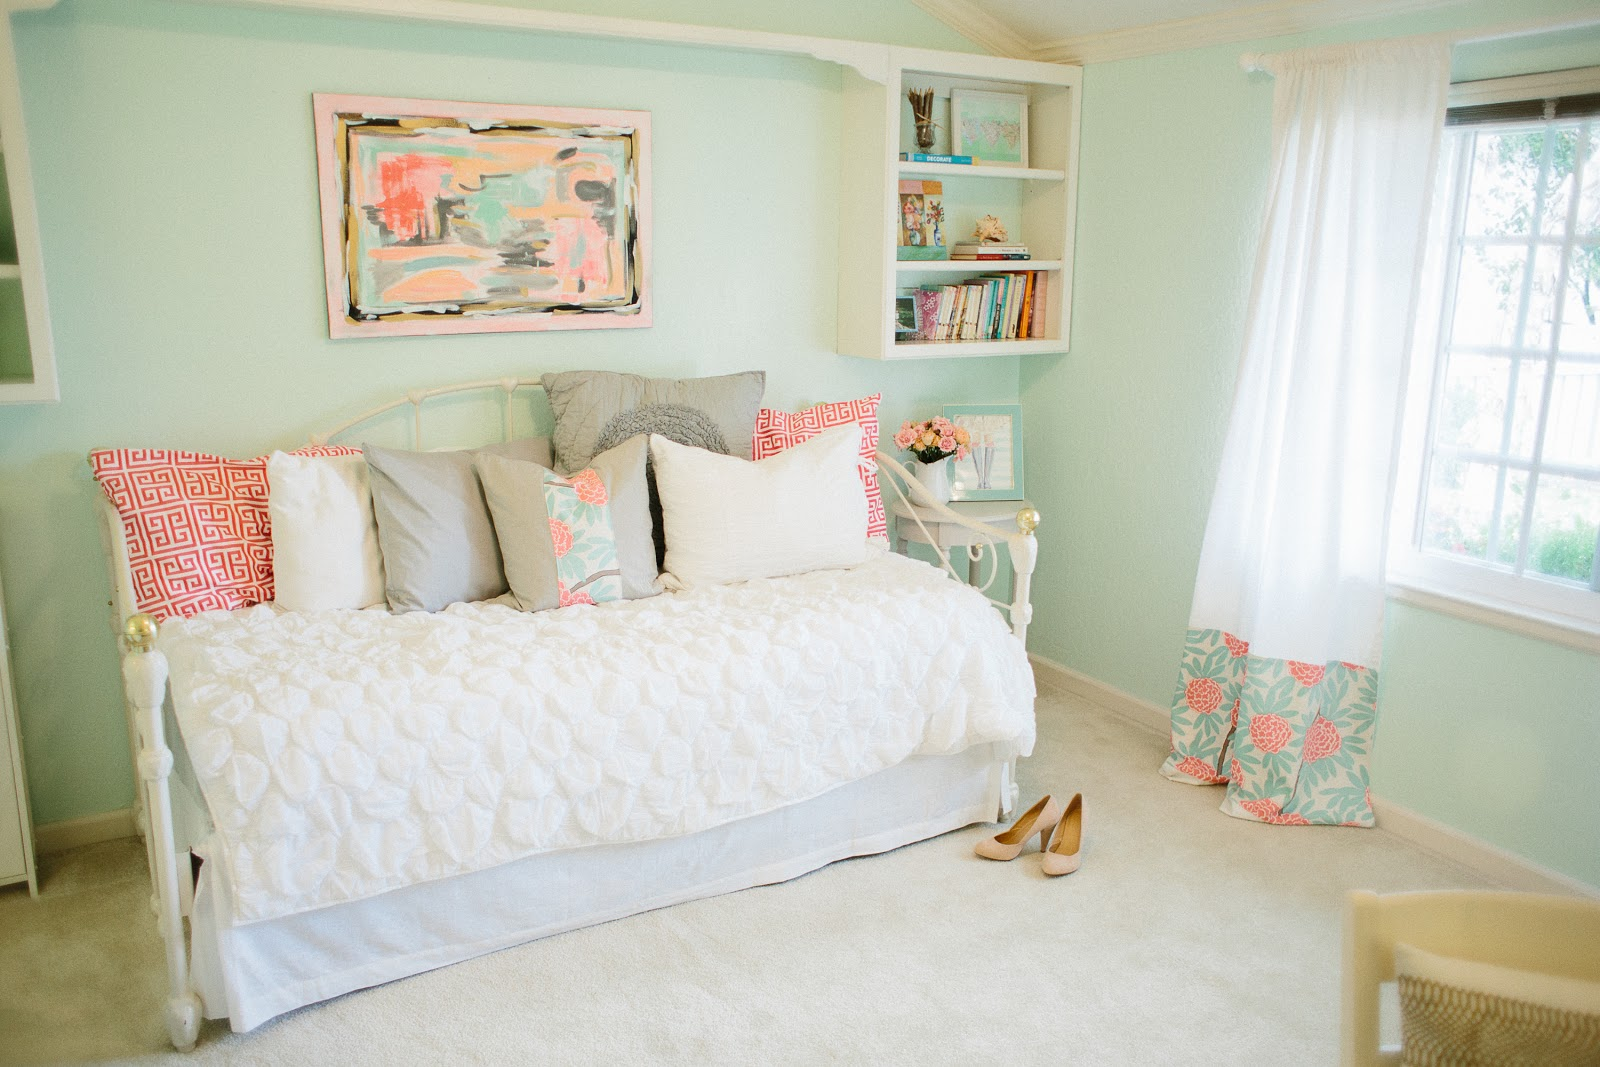 Mint peachy pink my bedroom tour reveal michaela for Mint green bedroom ideas